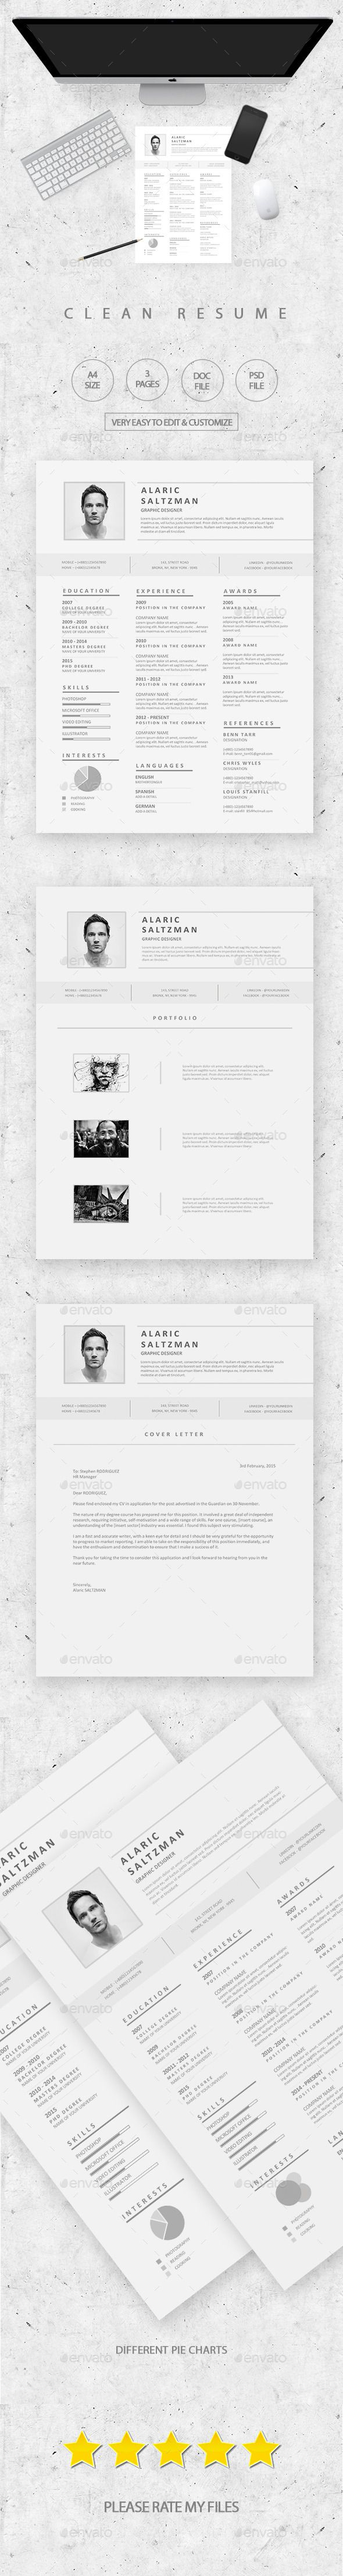 clean & simple resume - resumes stationery | good | pinterest